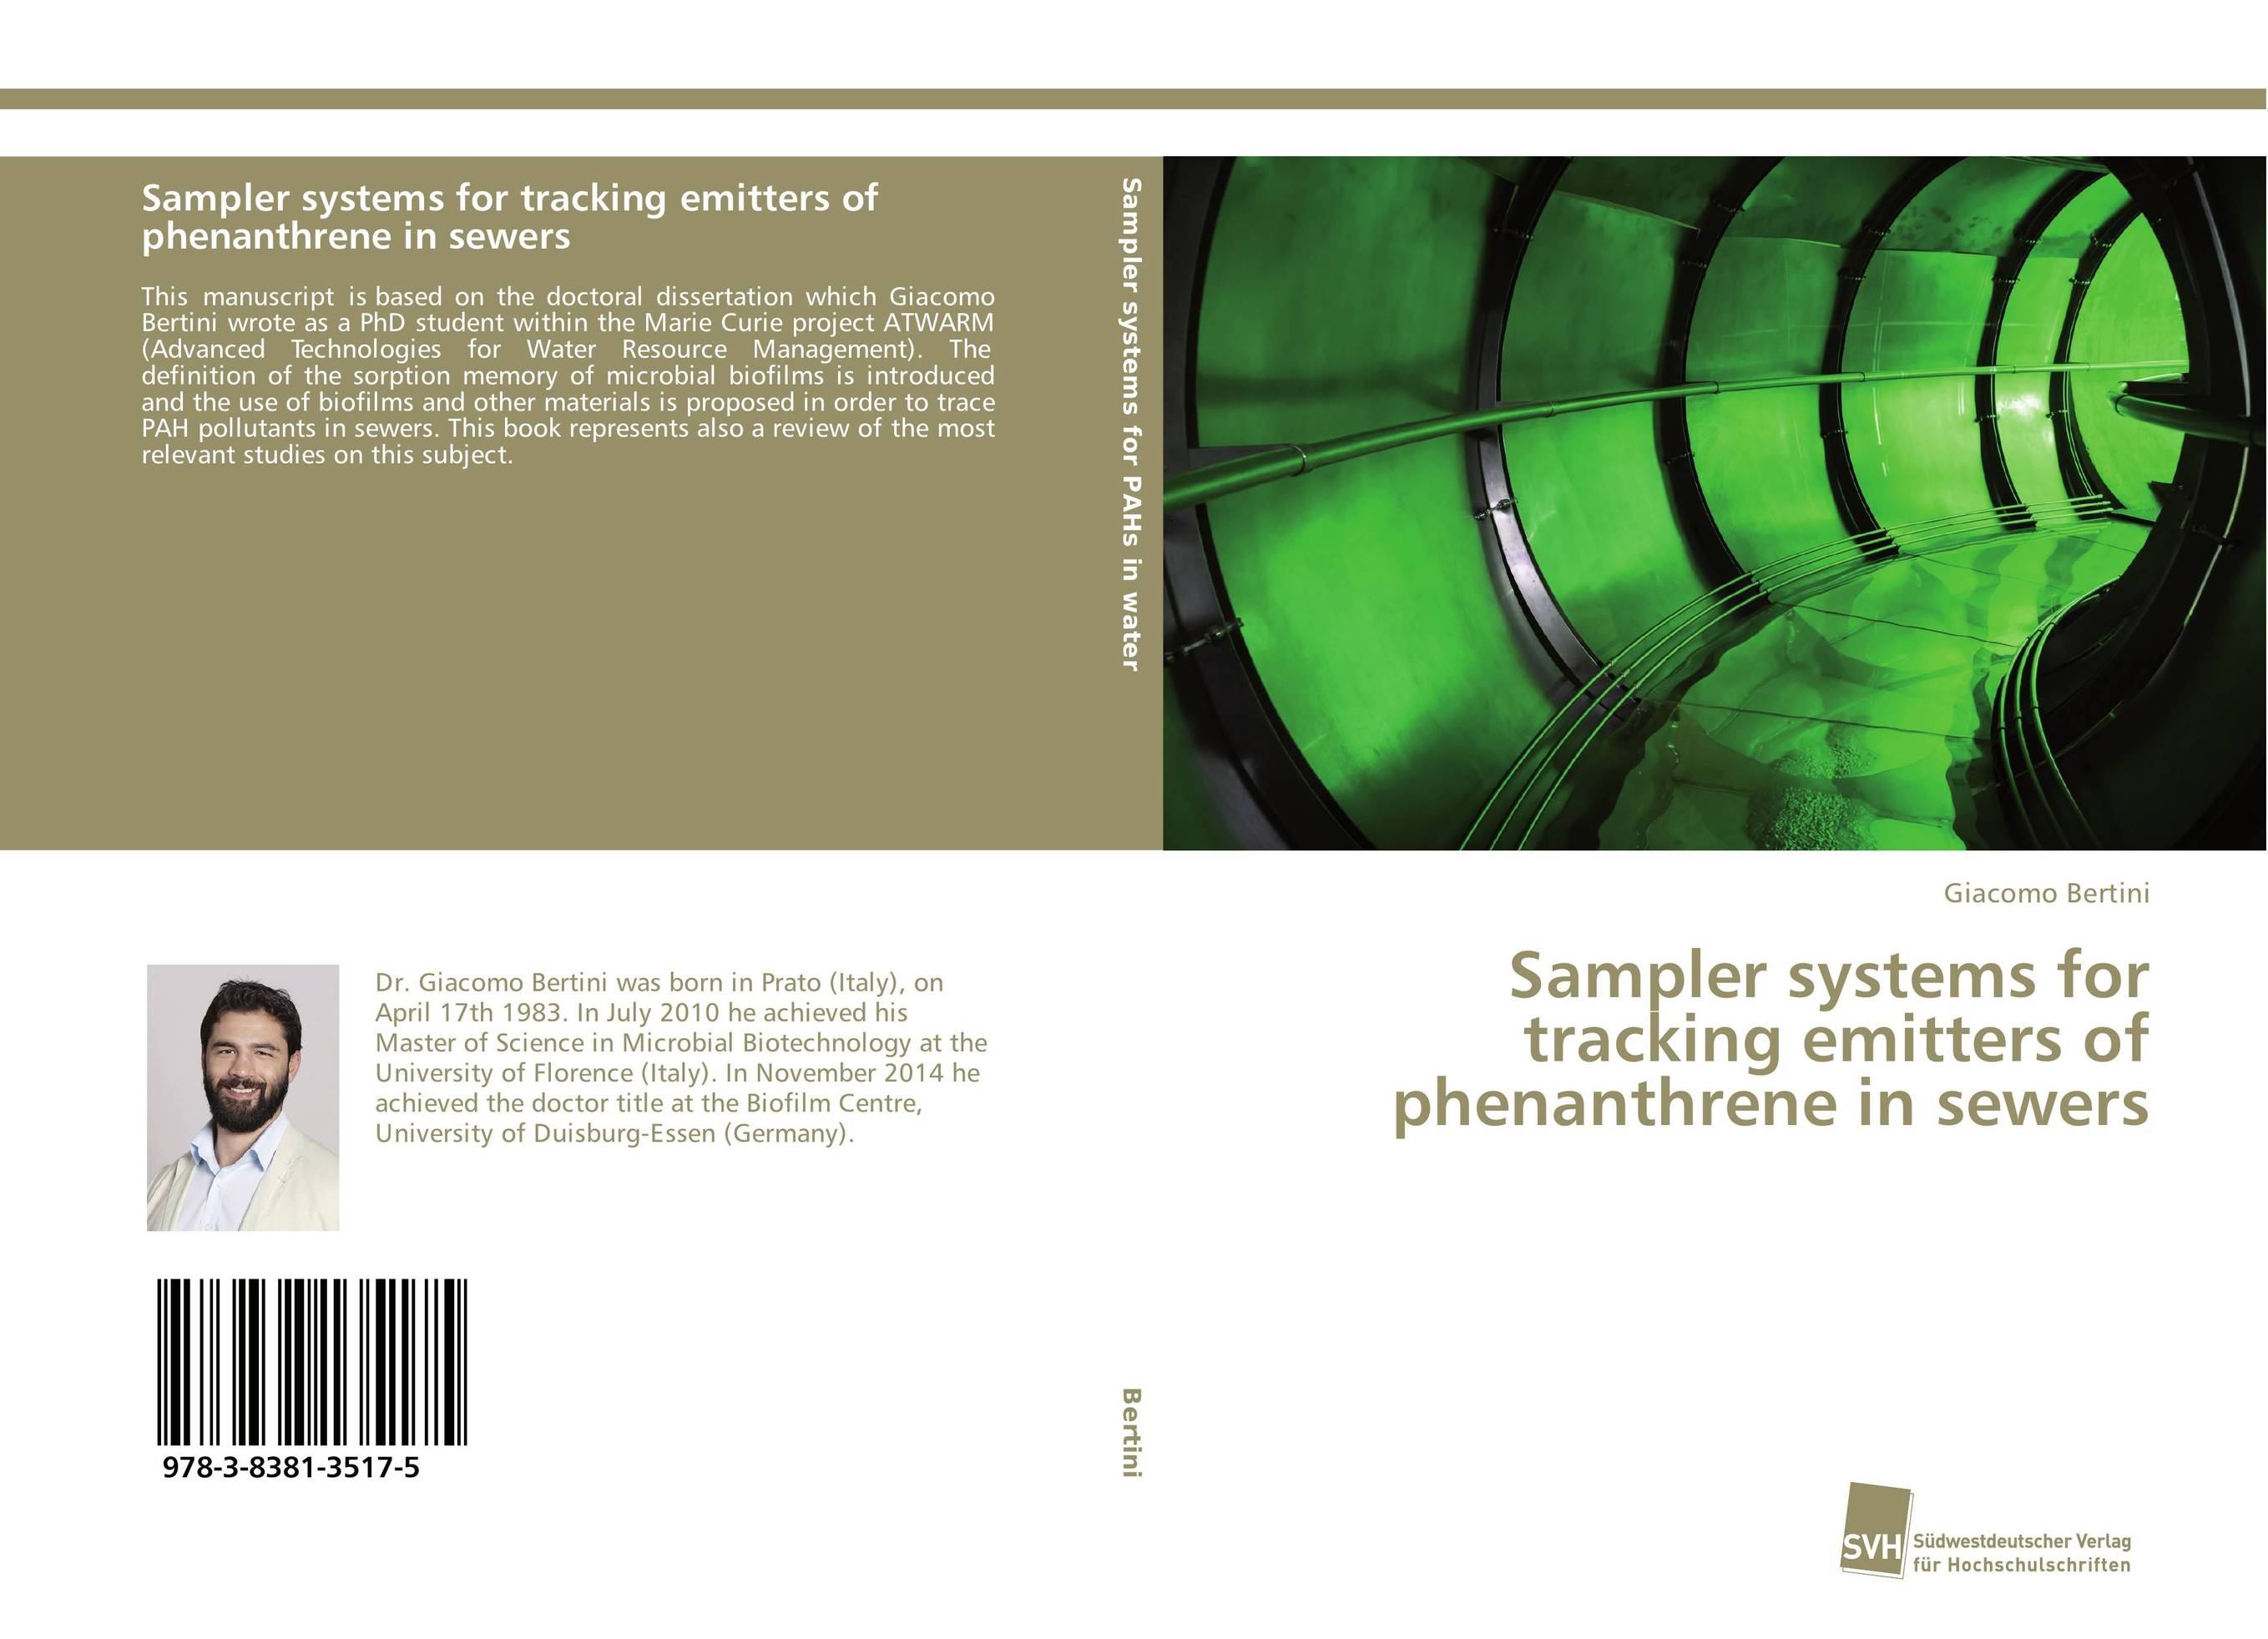 Sampler systems for tracking emitters of phenanthrene in sewers